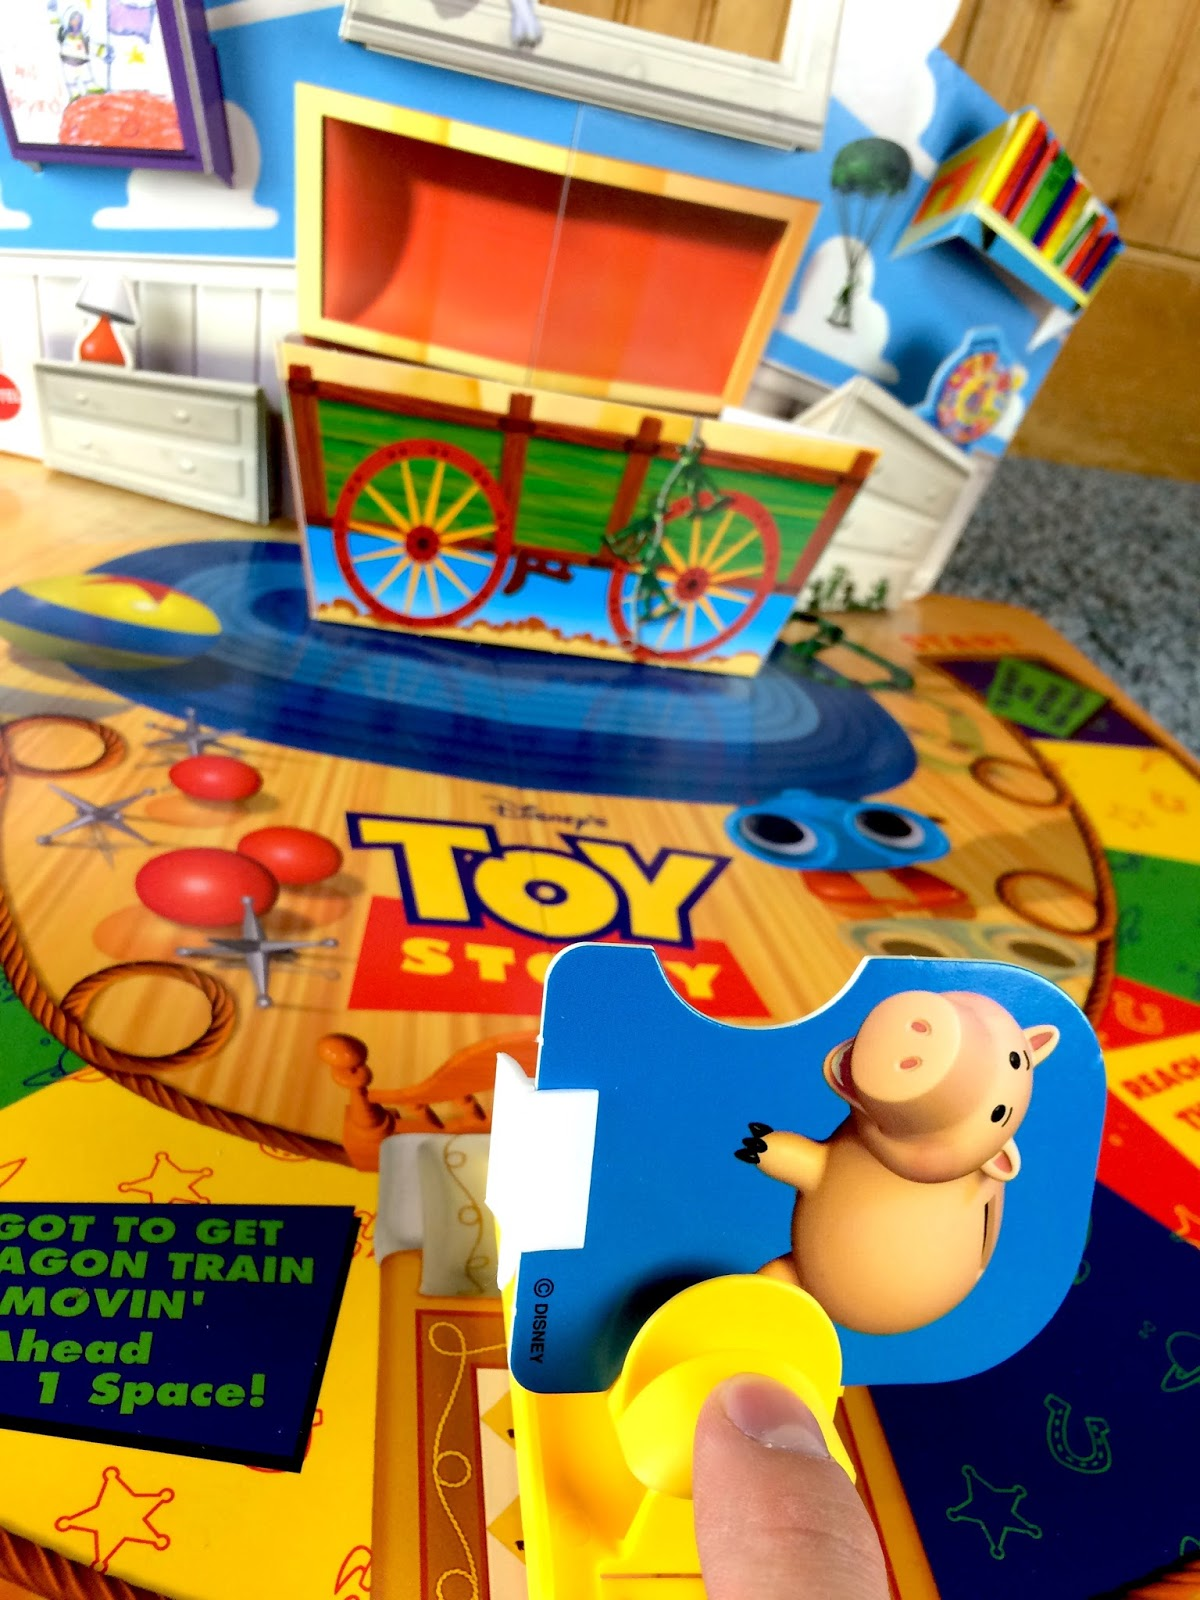 Toy Story 1 Games : Dan the pixar fan toy story quot toys awaaaay board game